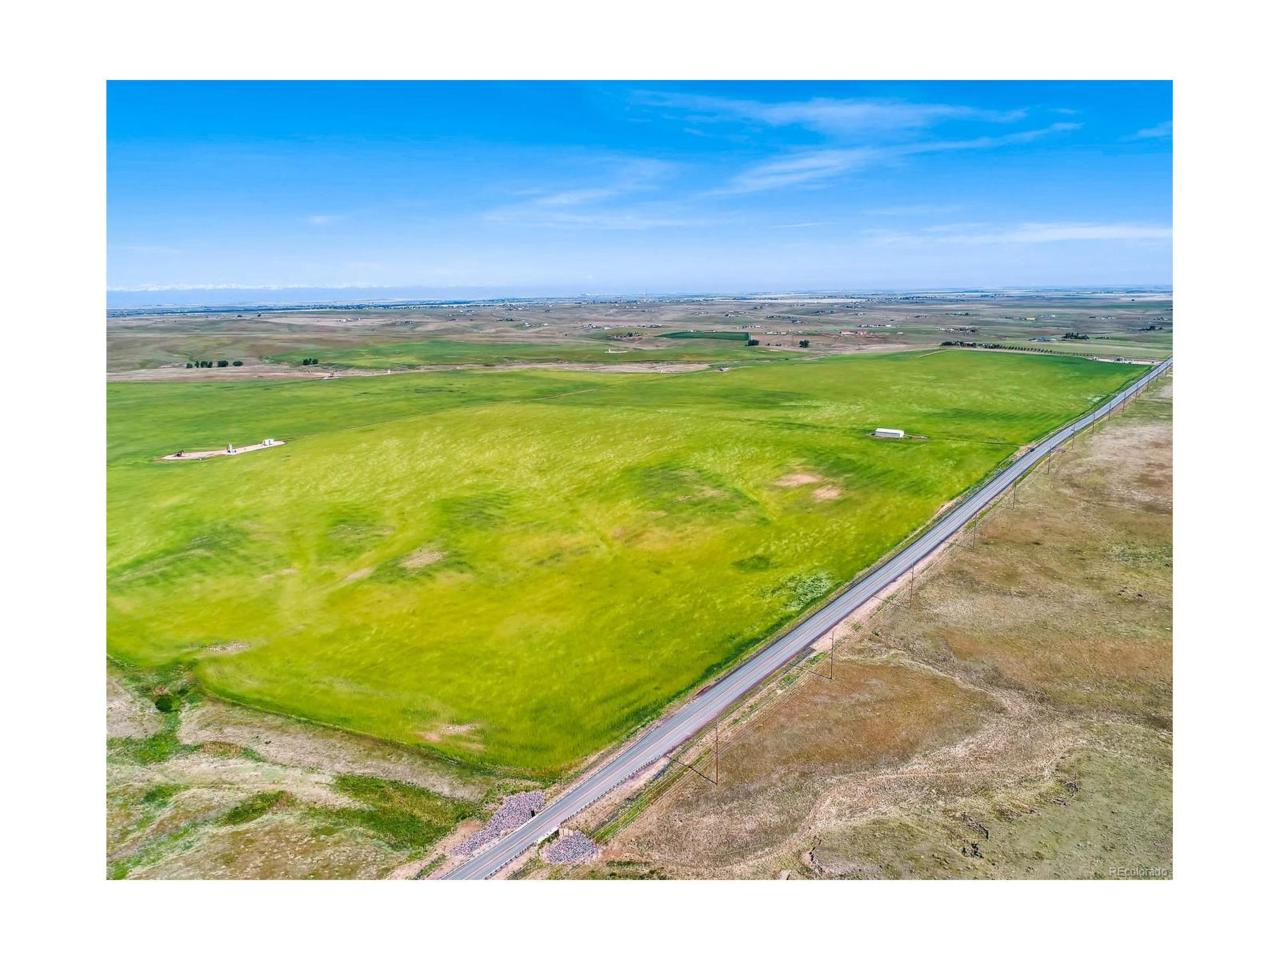 2707 S County Road 129, Bennett, CO 80102 (MLS #6281707) :: 8z Real Estate